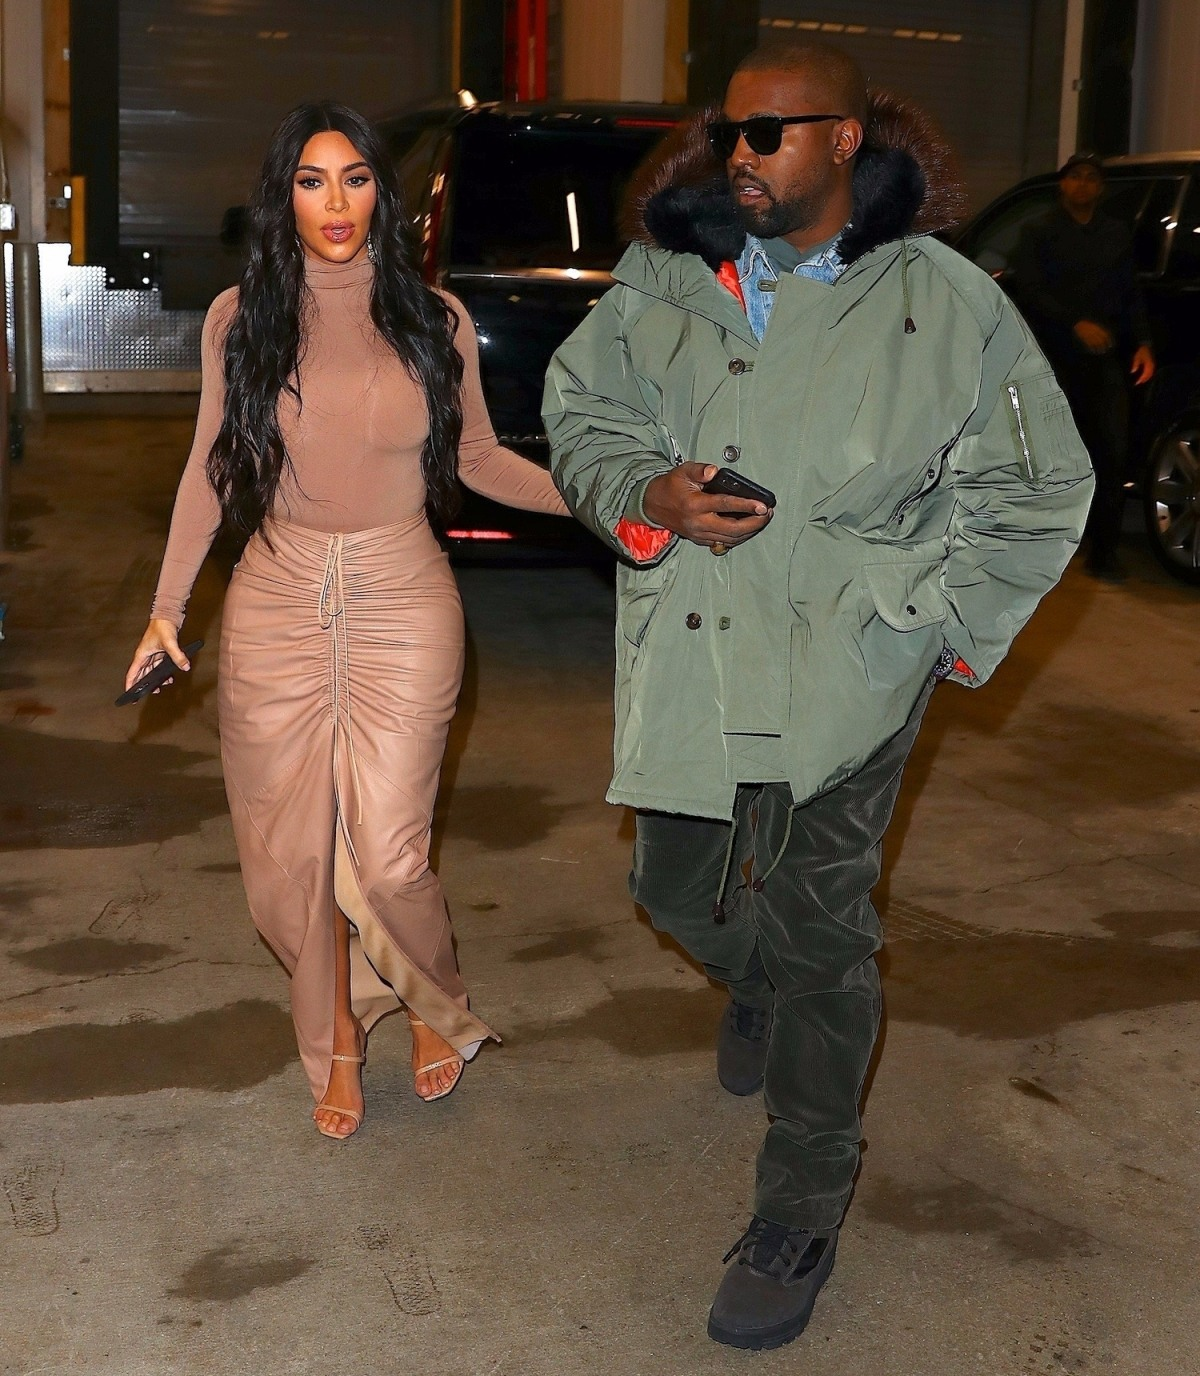 Kim Kardashian and Kanye West arrive to Nordstrom for her Skims meet & greet